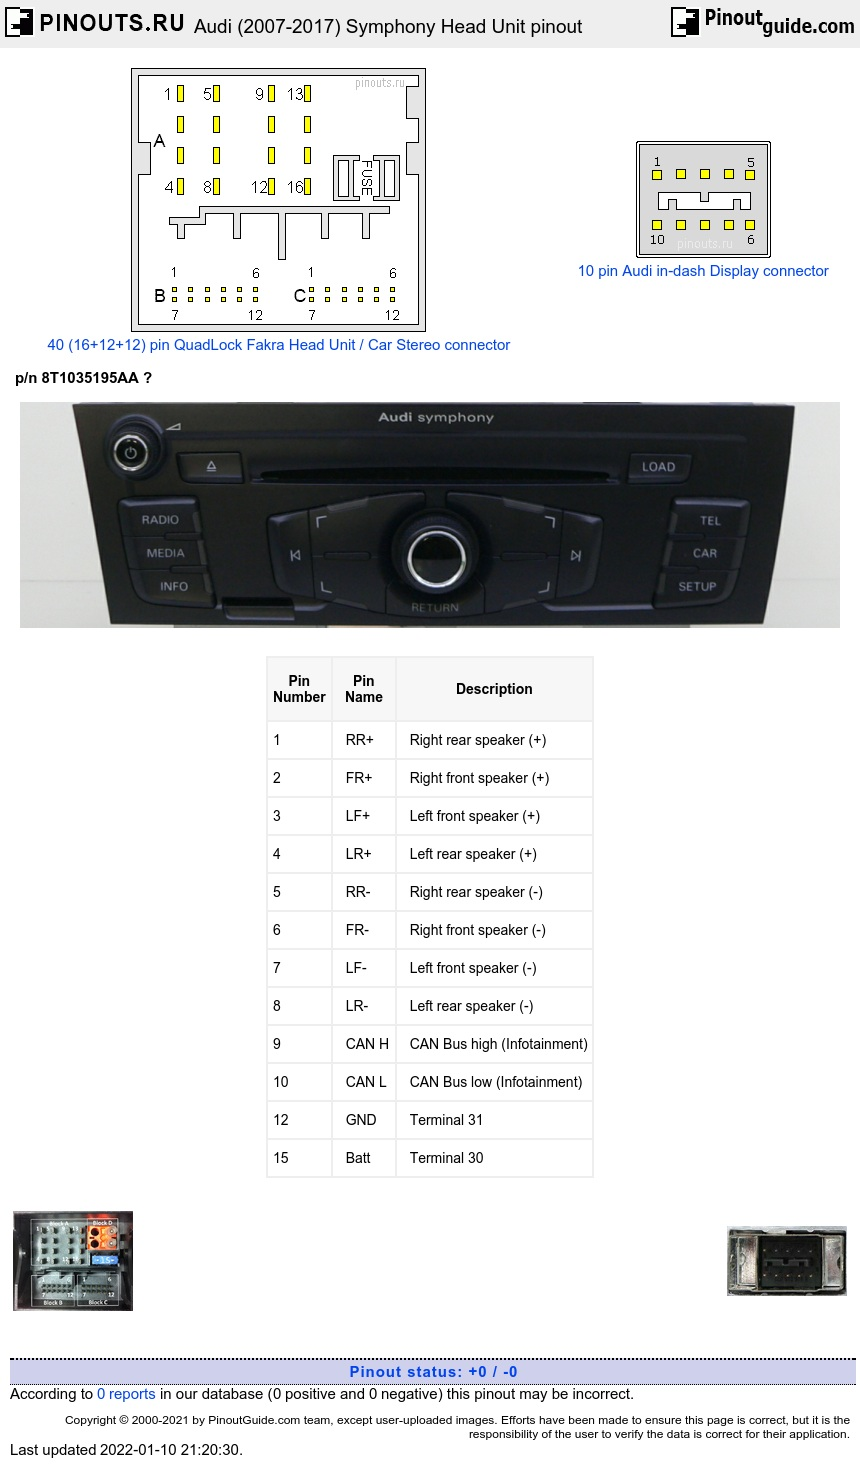 Audi (2007-2017) Symphony Head Unit diagram